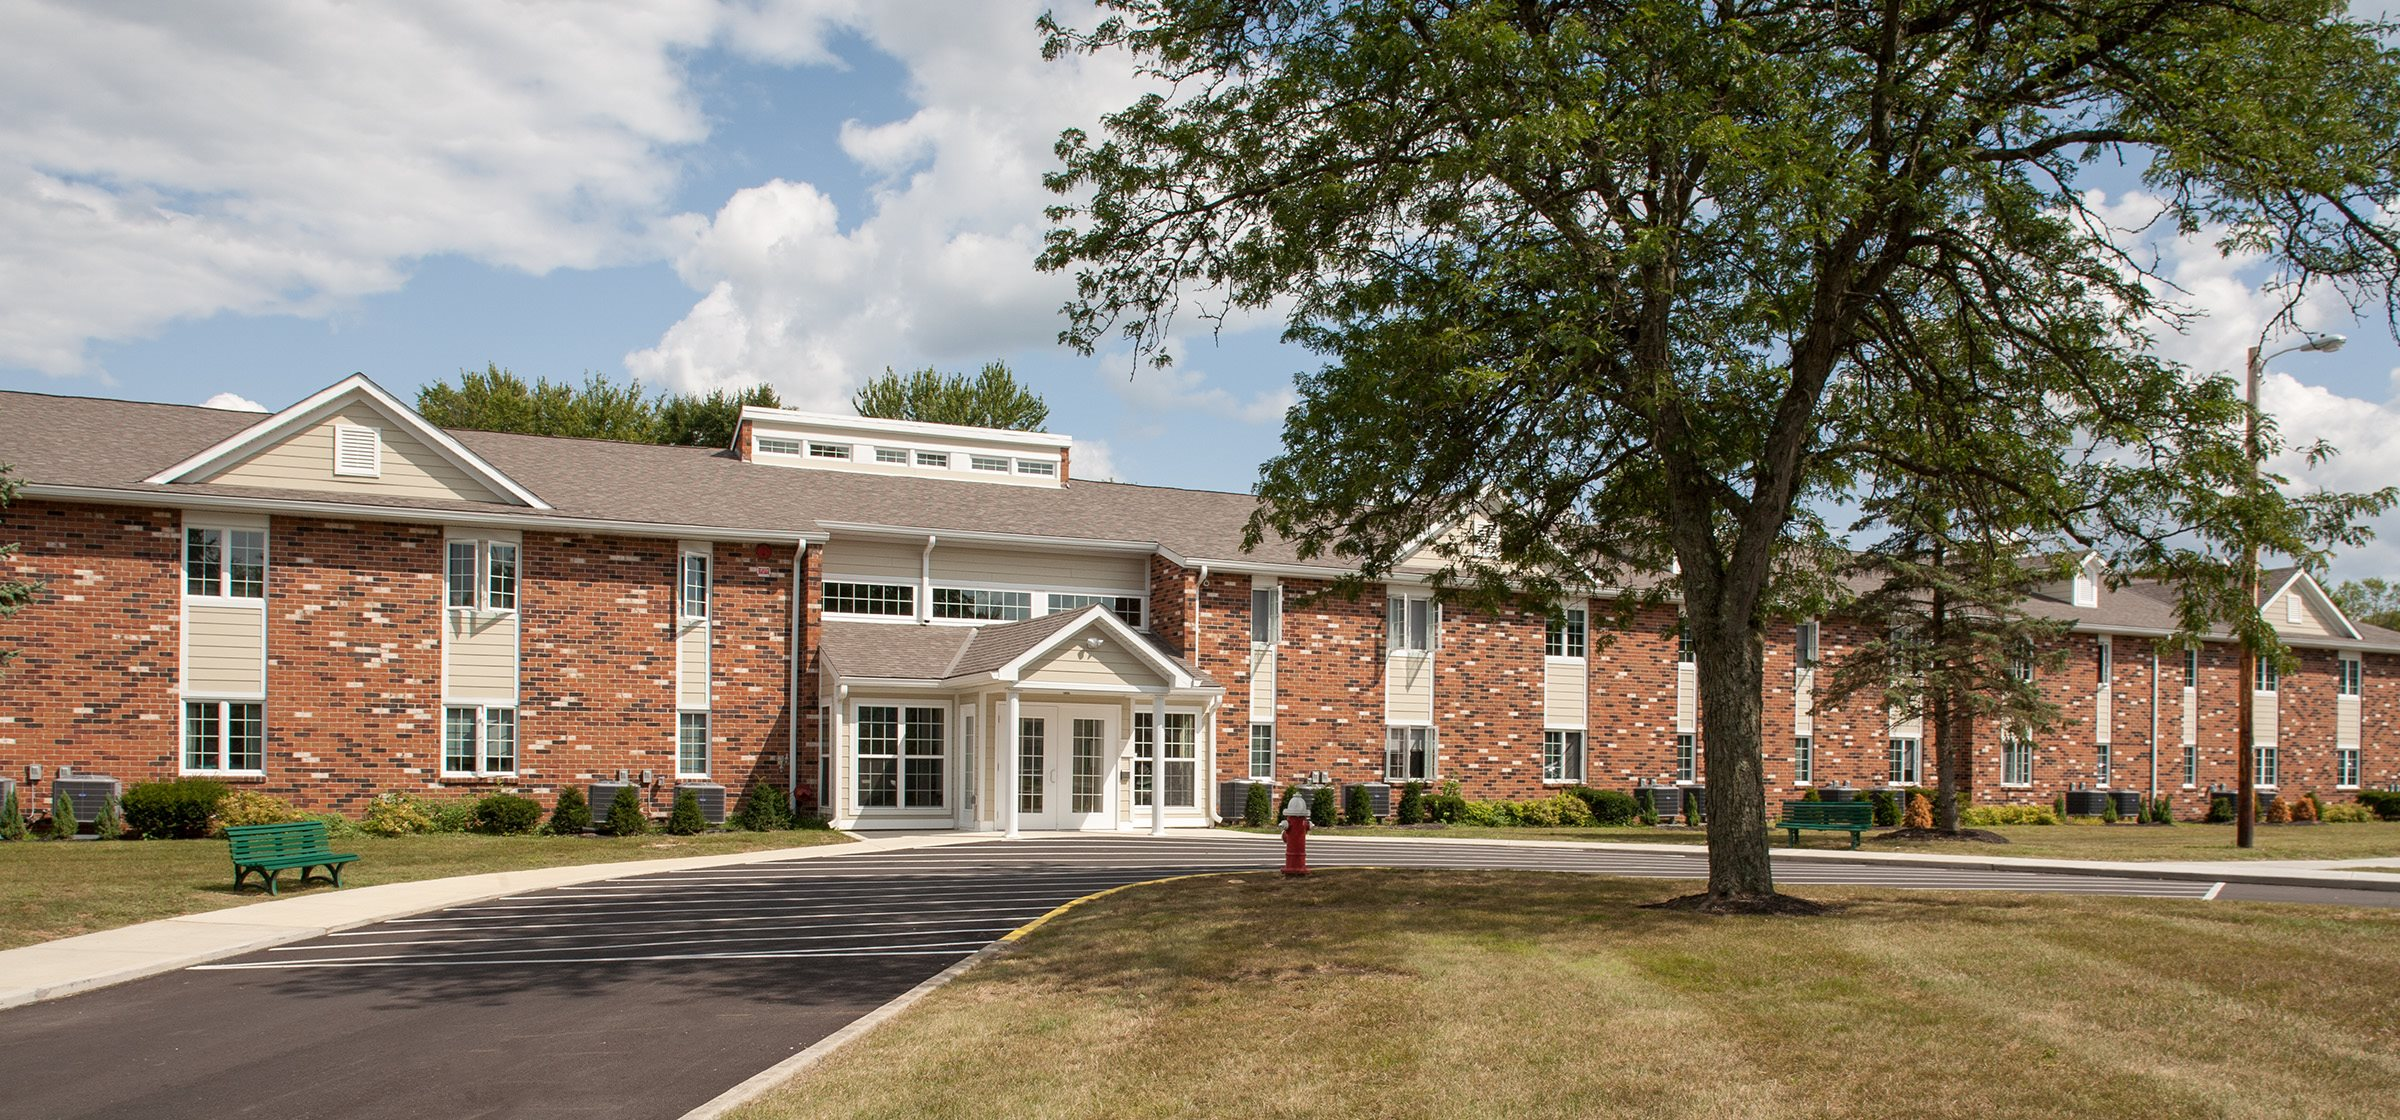 Georgetown Senior Apartments | Apartments in Delaware, OH